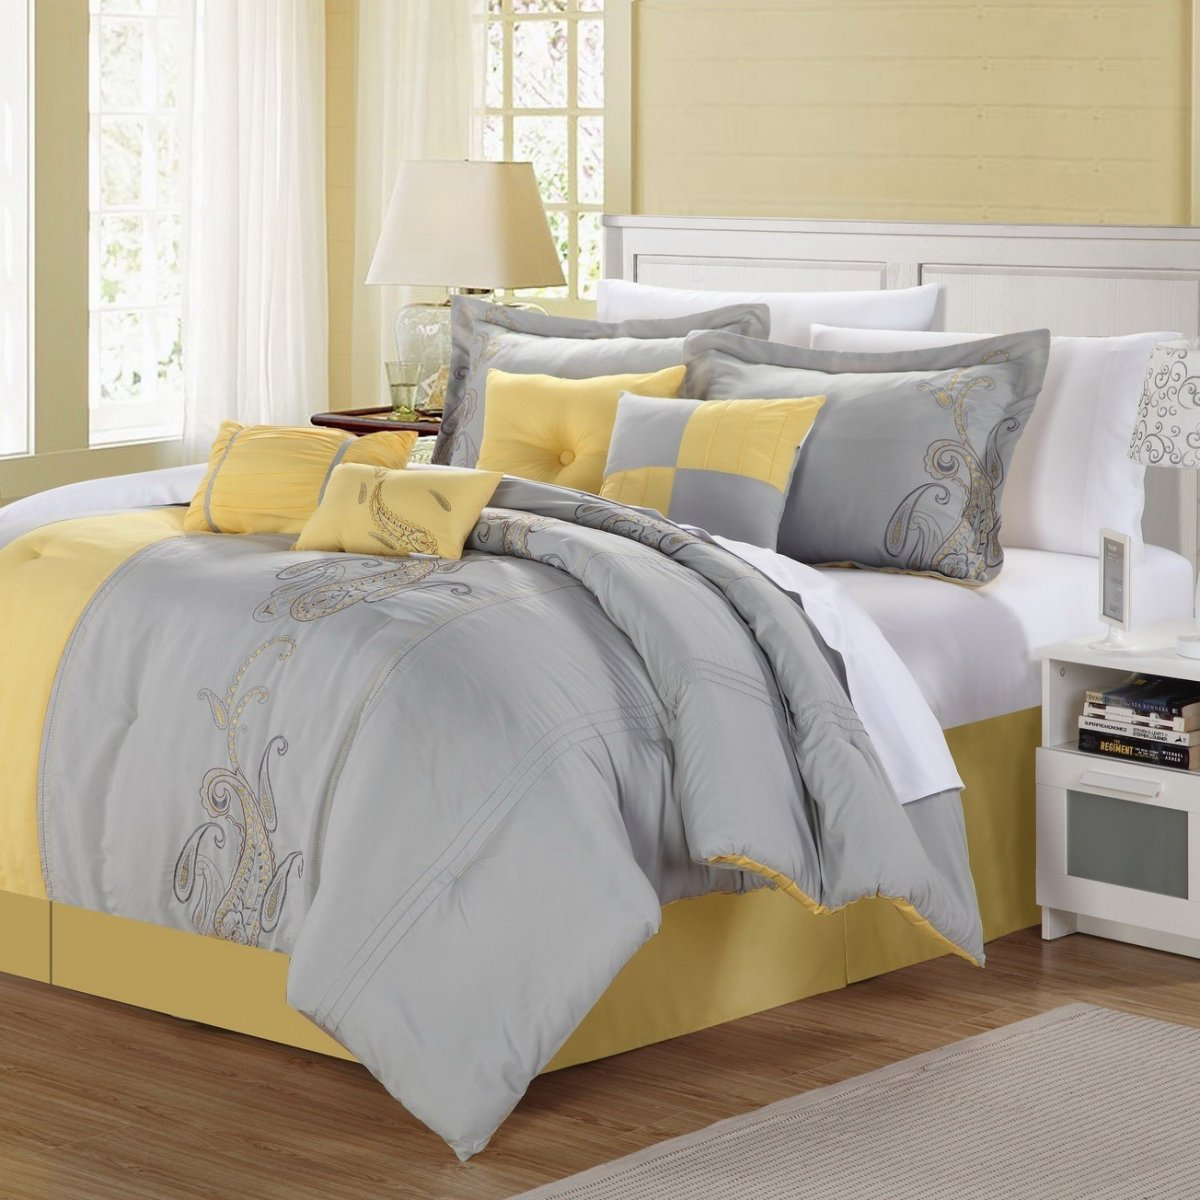 Image of: Simple Yellow Bed Skirt